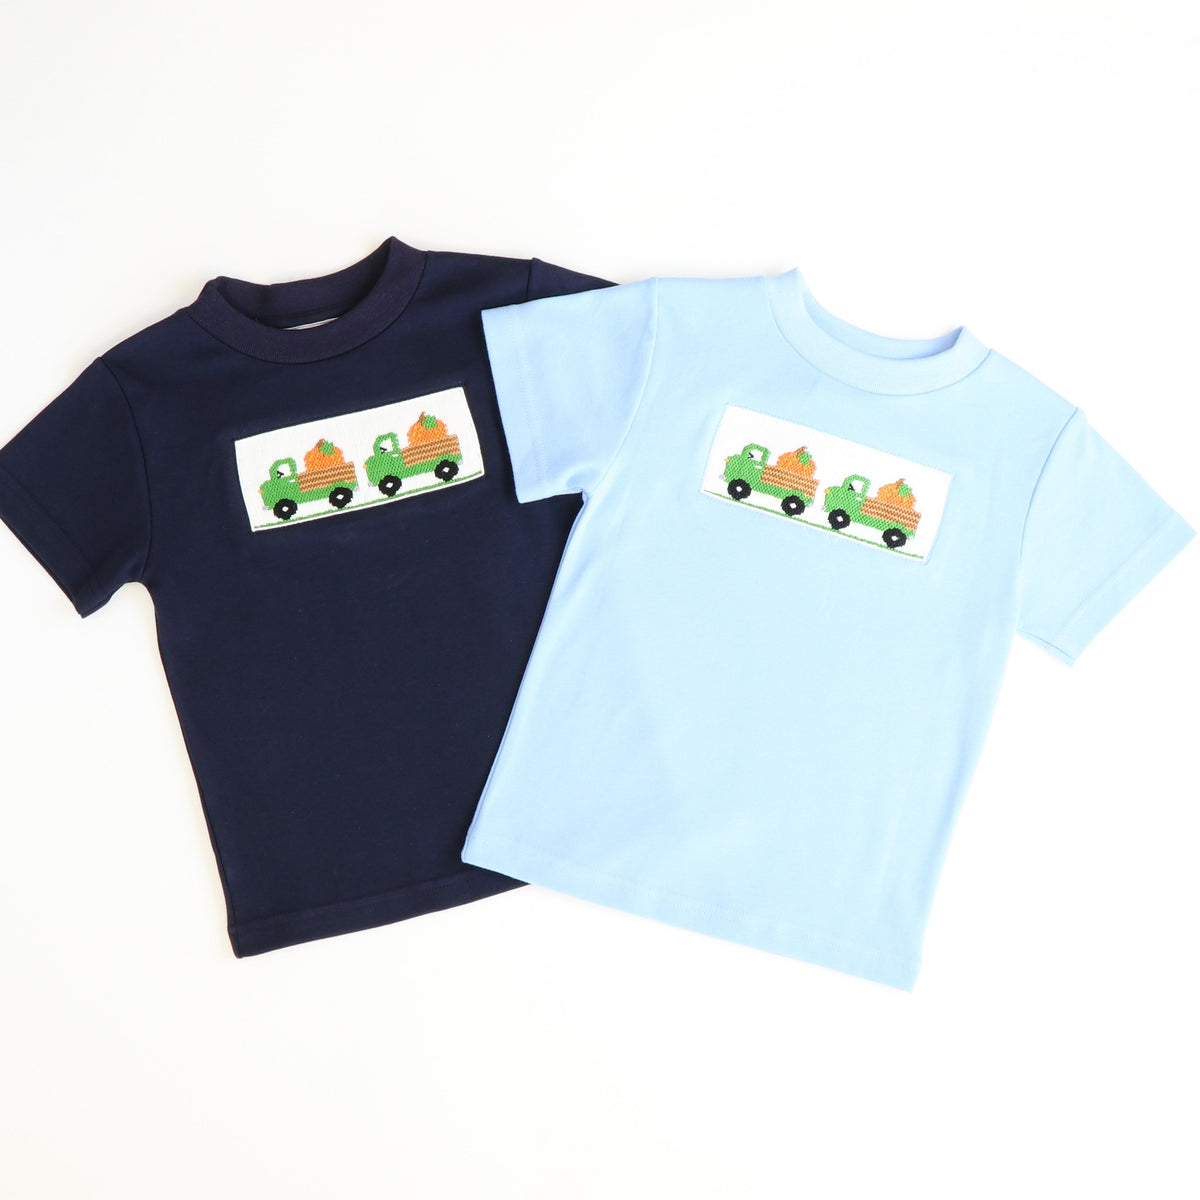 Smocked Pumpkins & Trucks T-Shirt - Navy Blue